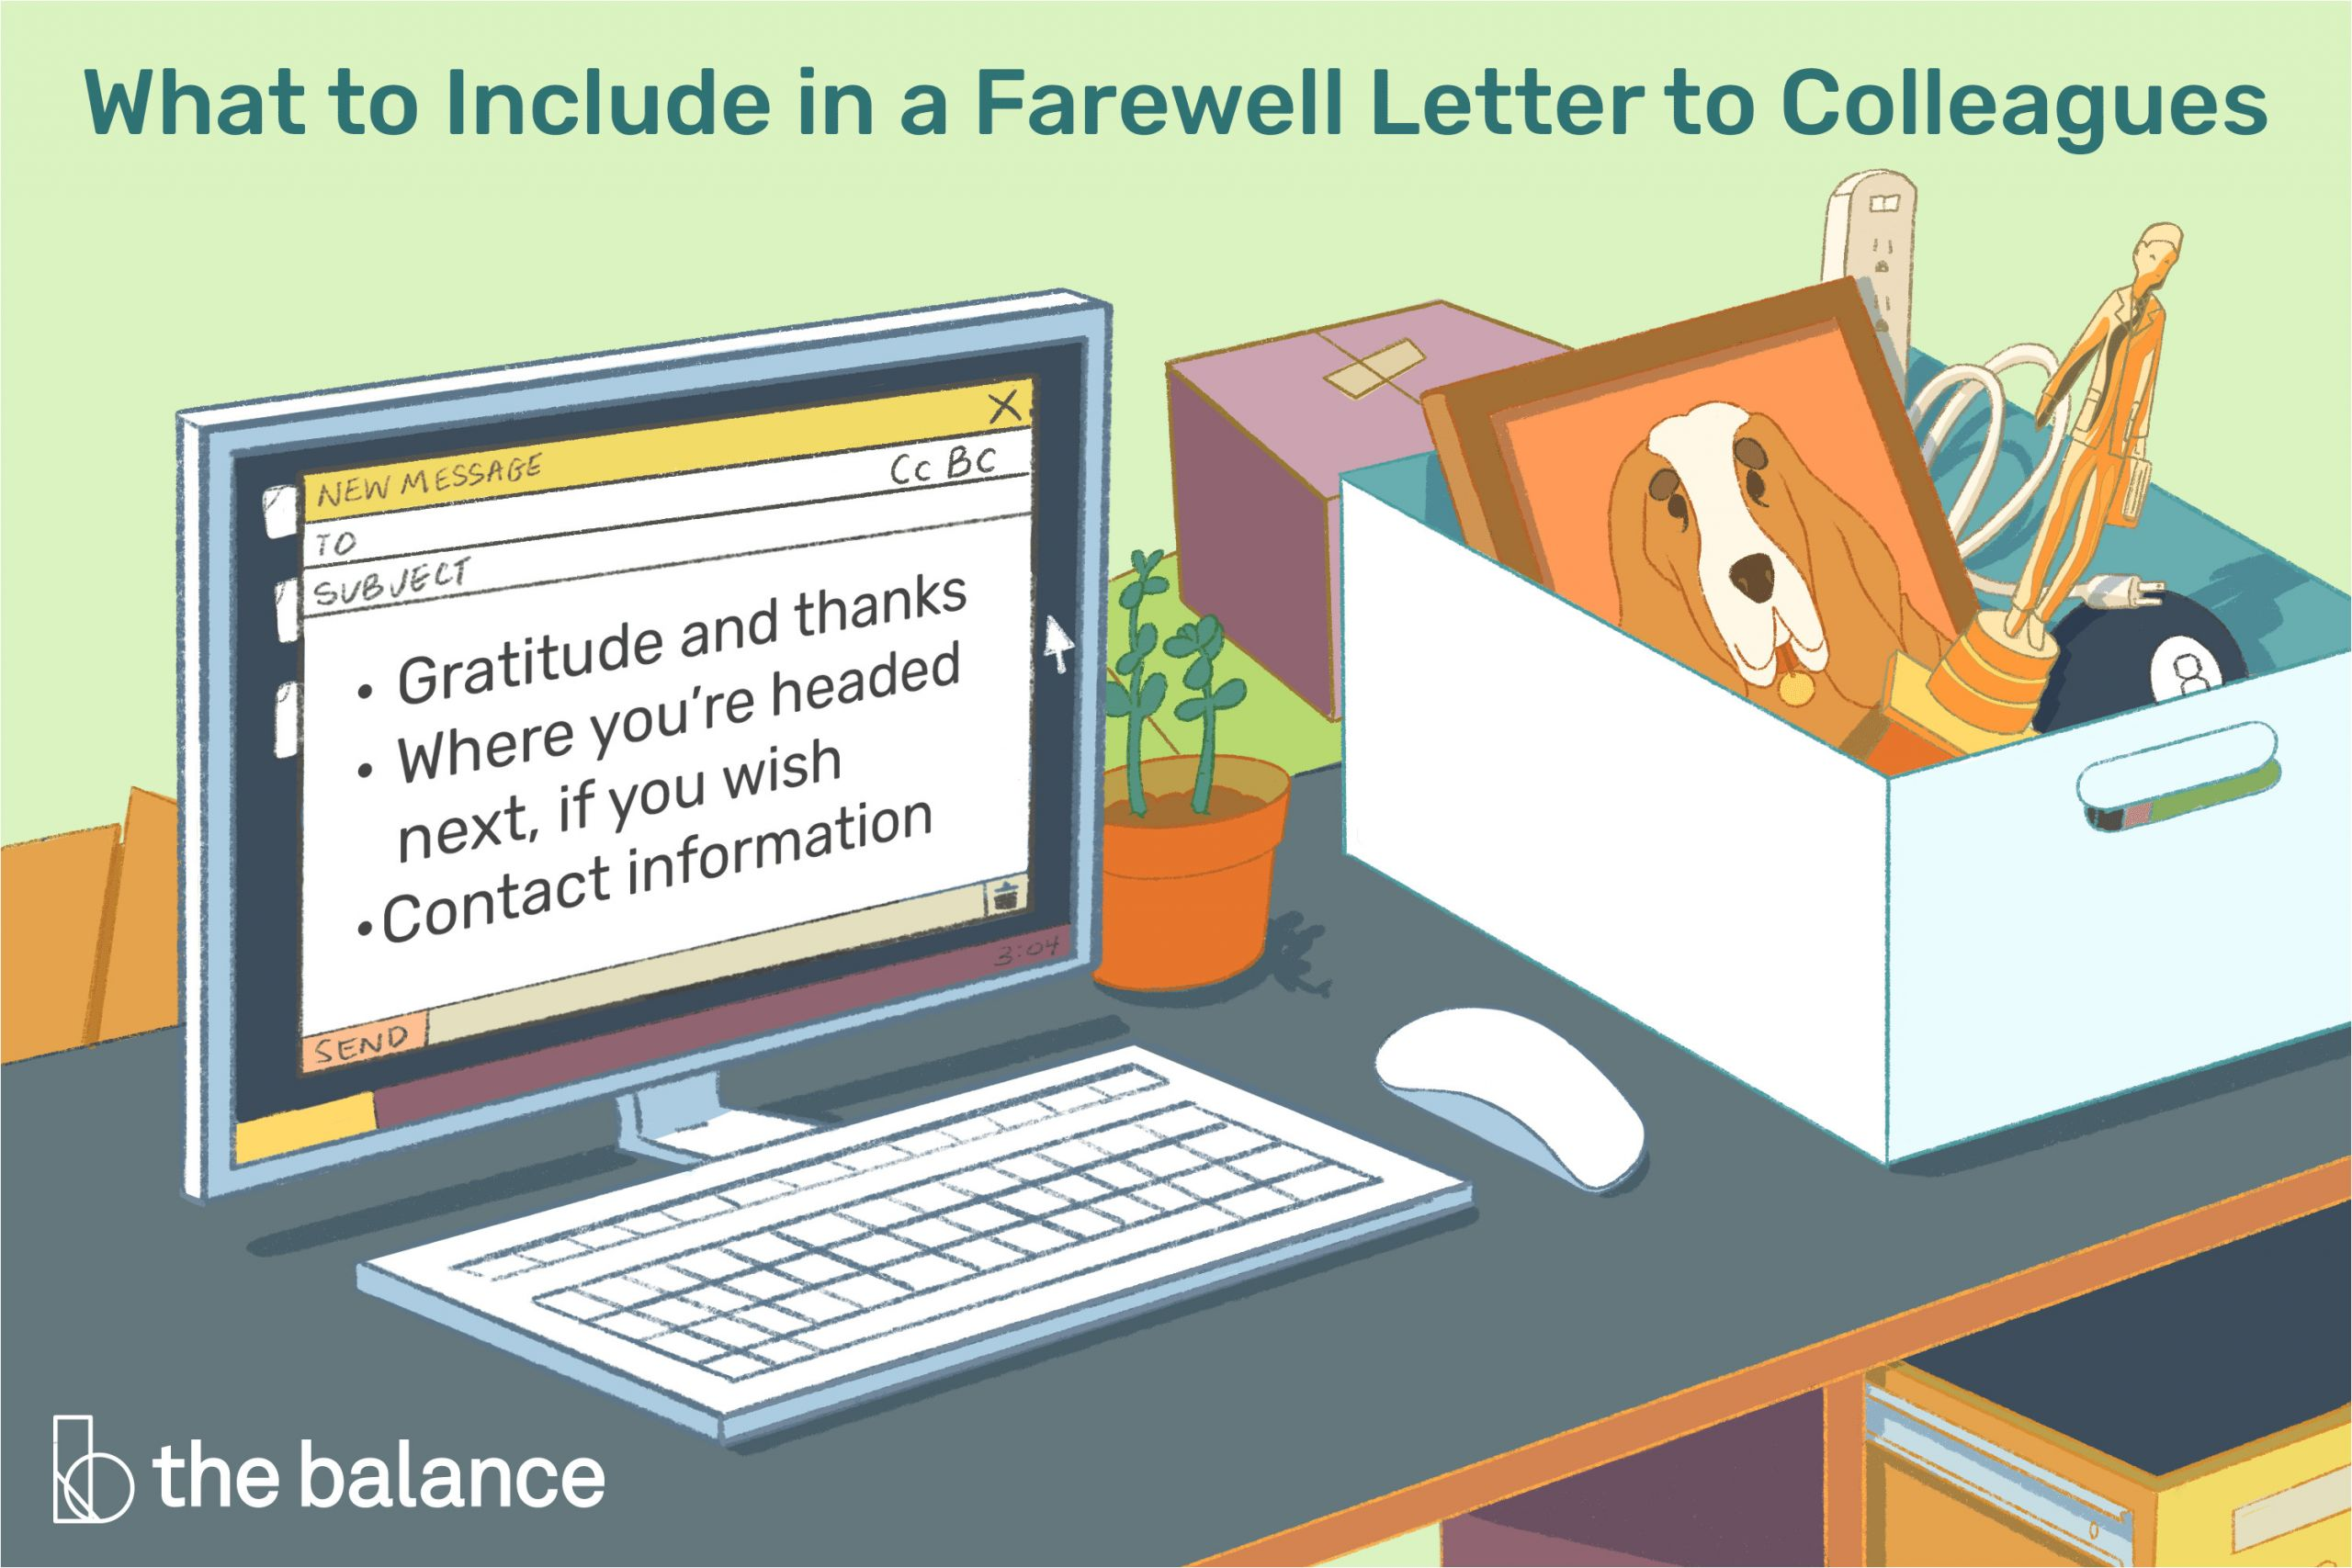 farewell letter samples 2060863 final 1d4e1ed4b2754b2891177e5b7b1f4d00 png